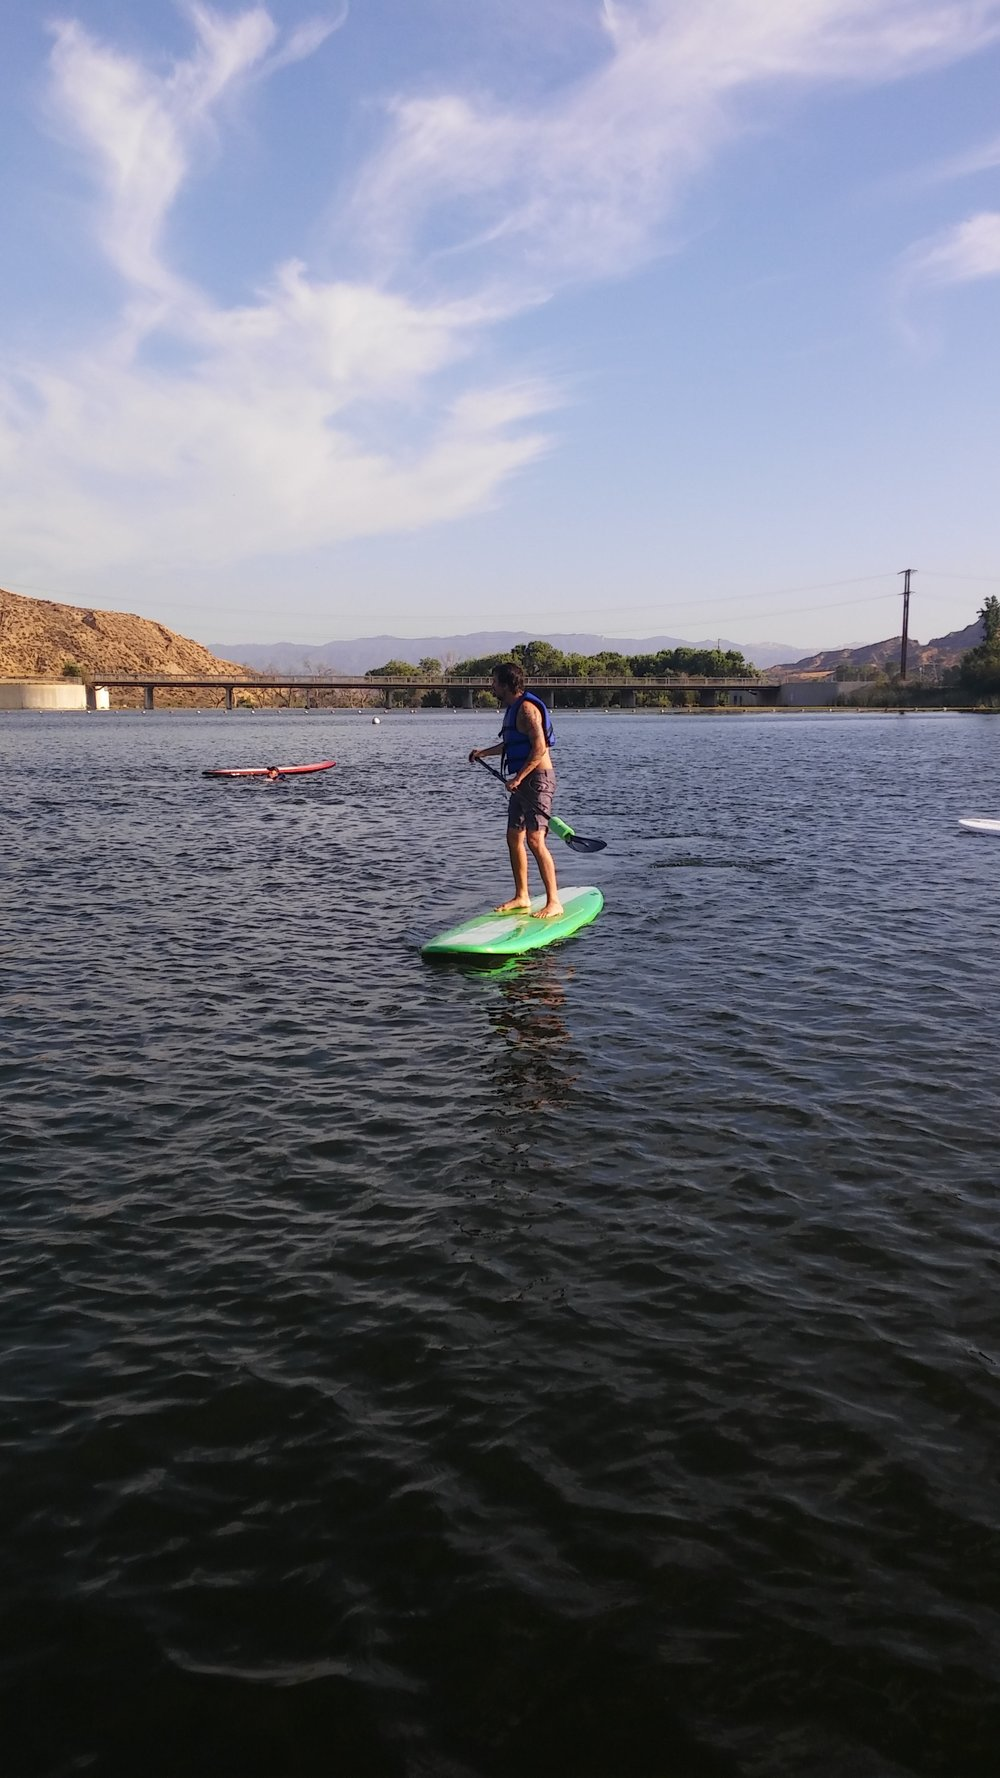 Enhancing our recovery with a little SUP